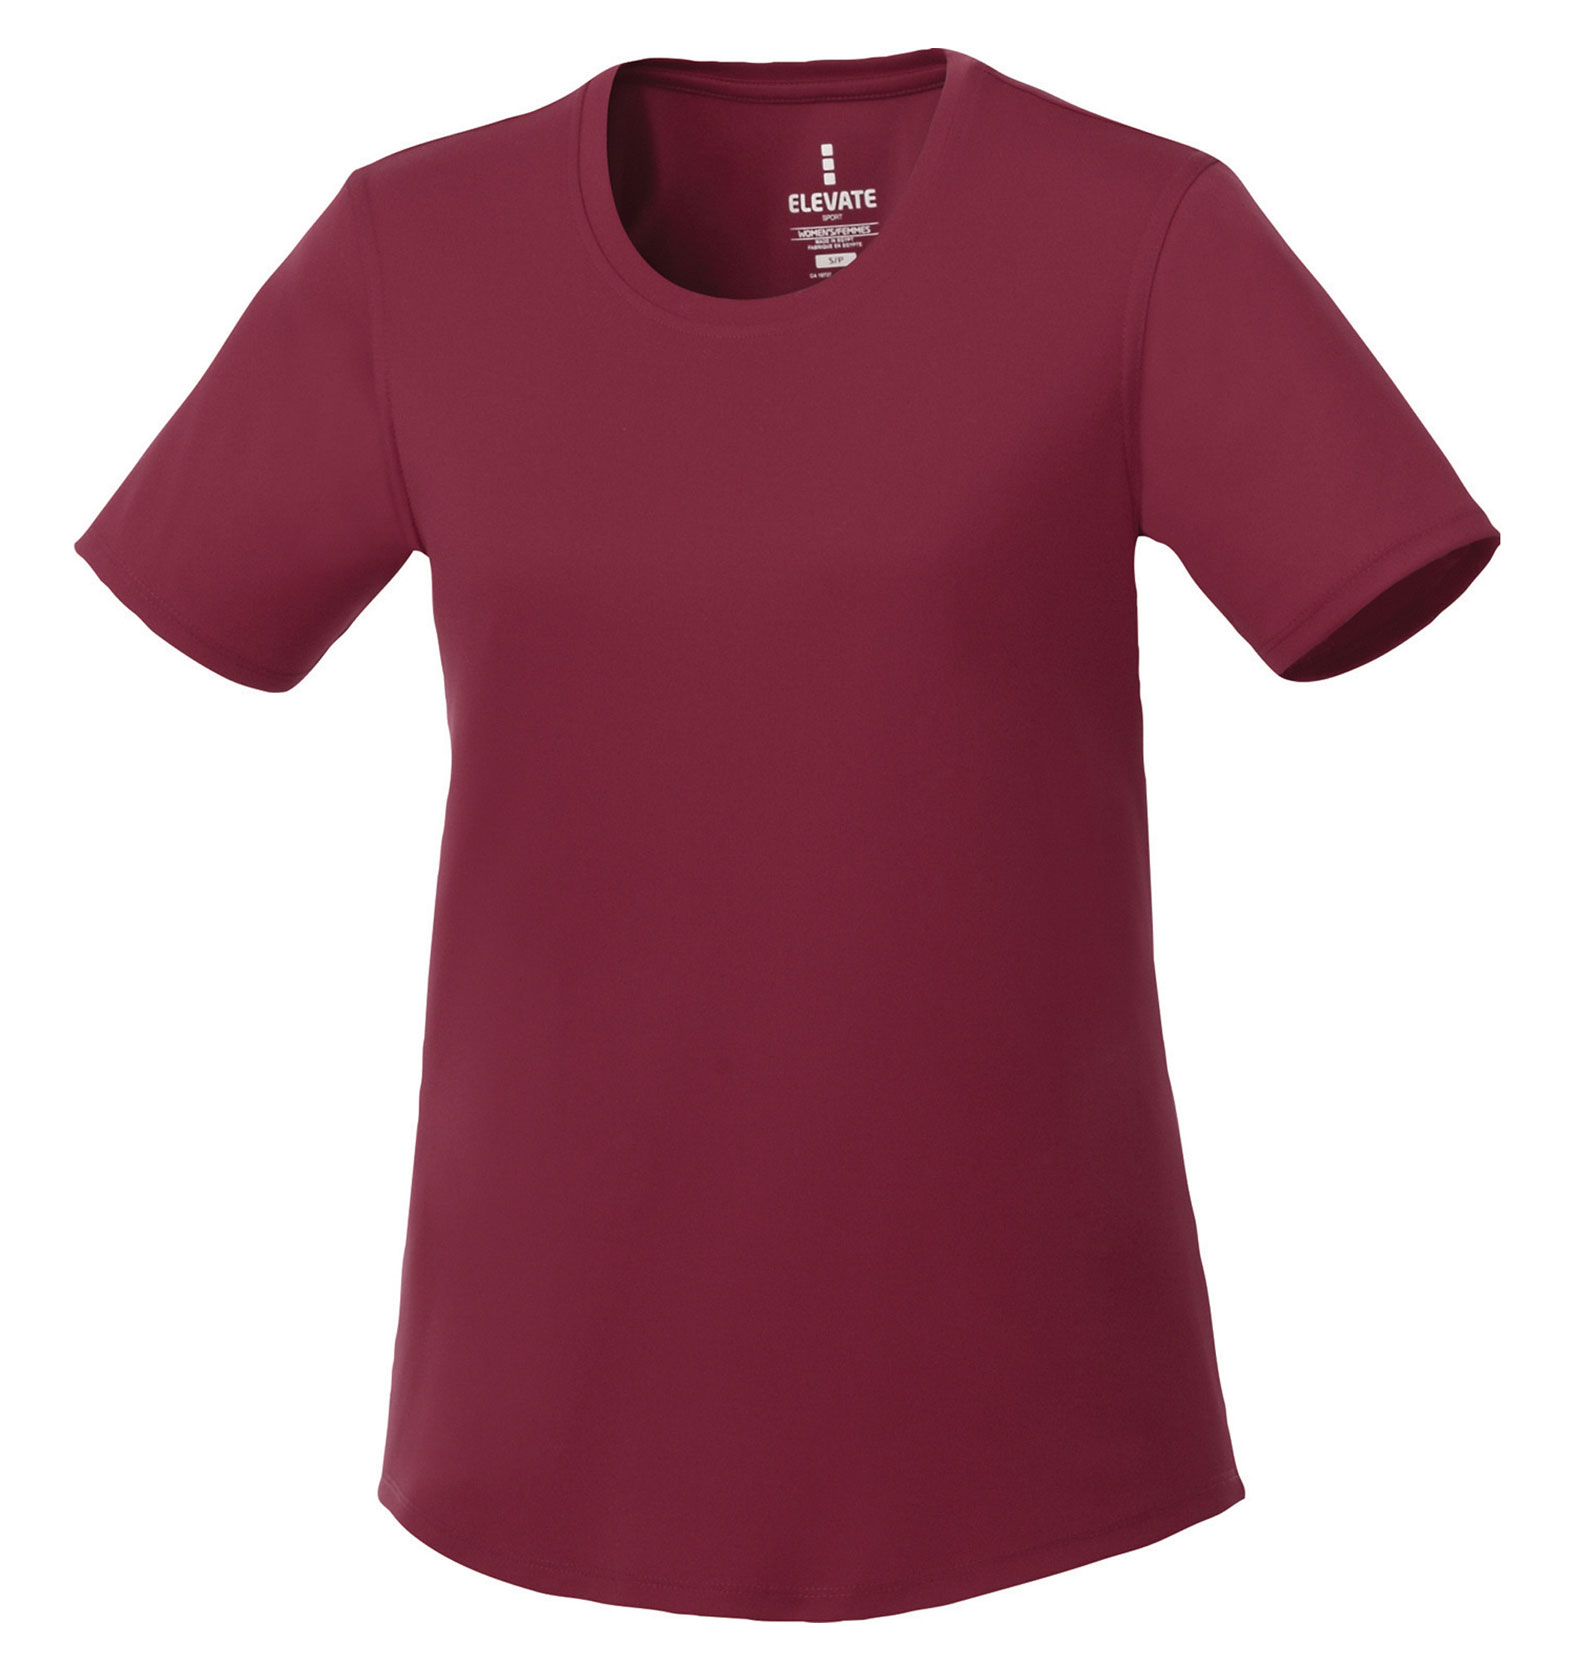 Womens Omi Short Sleeve Tech Tee